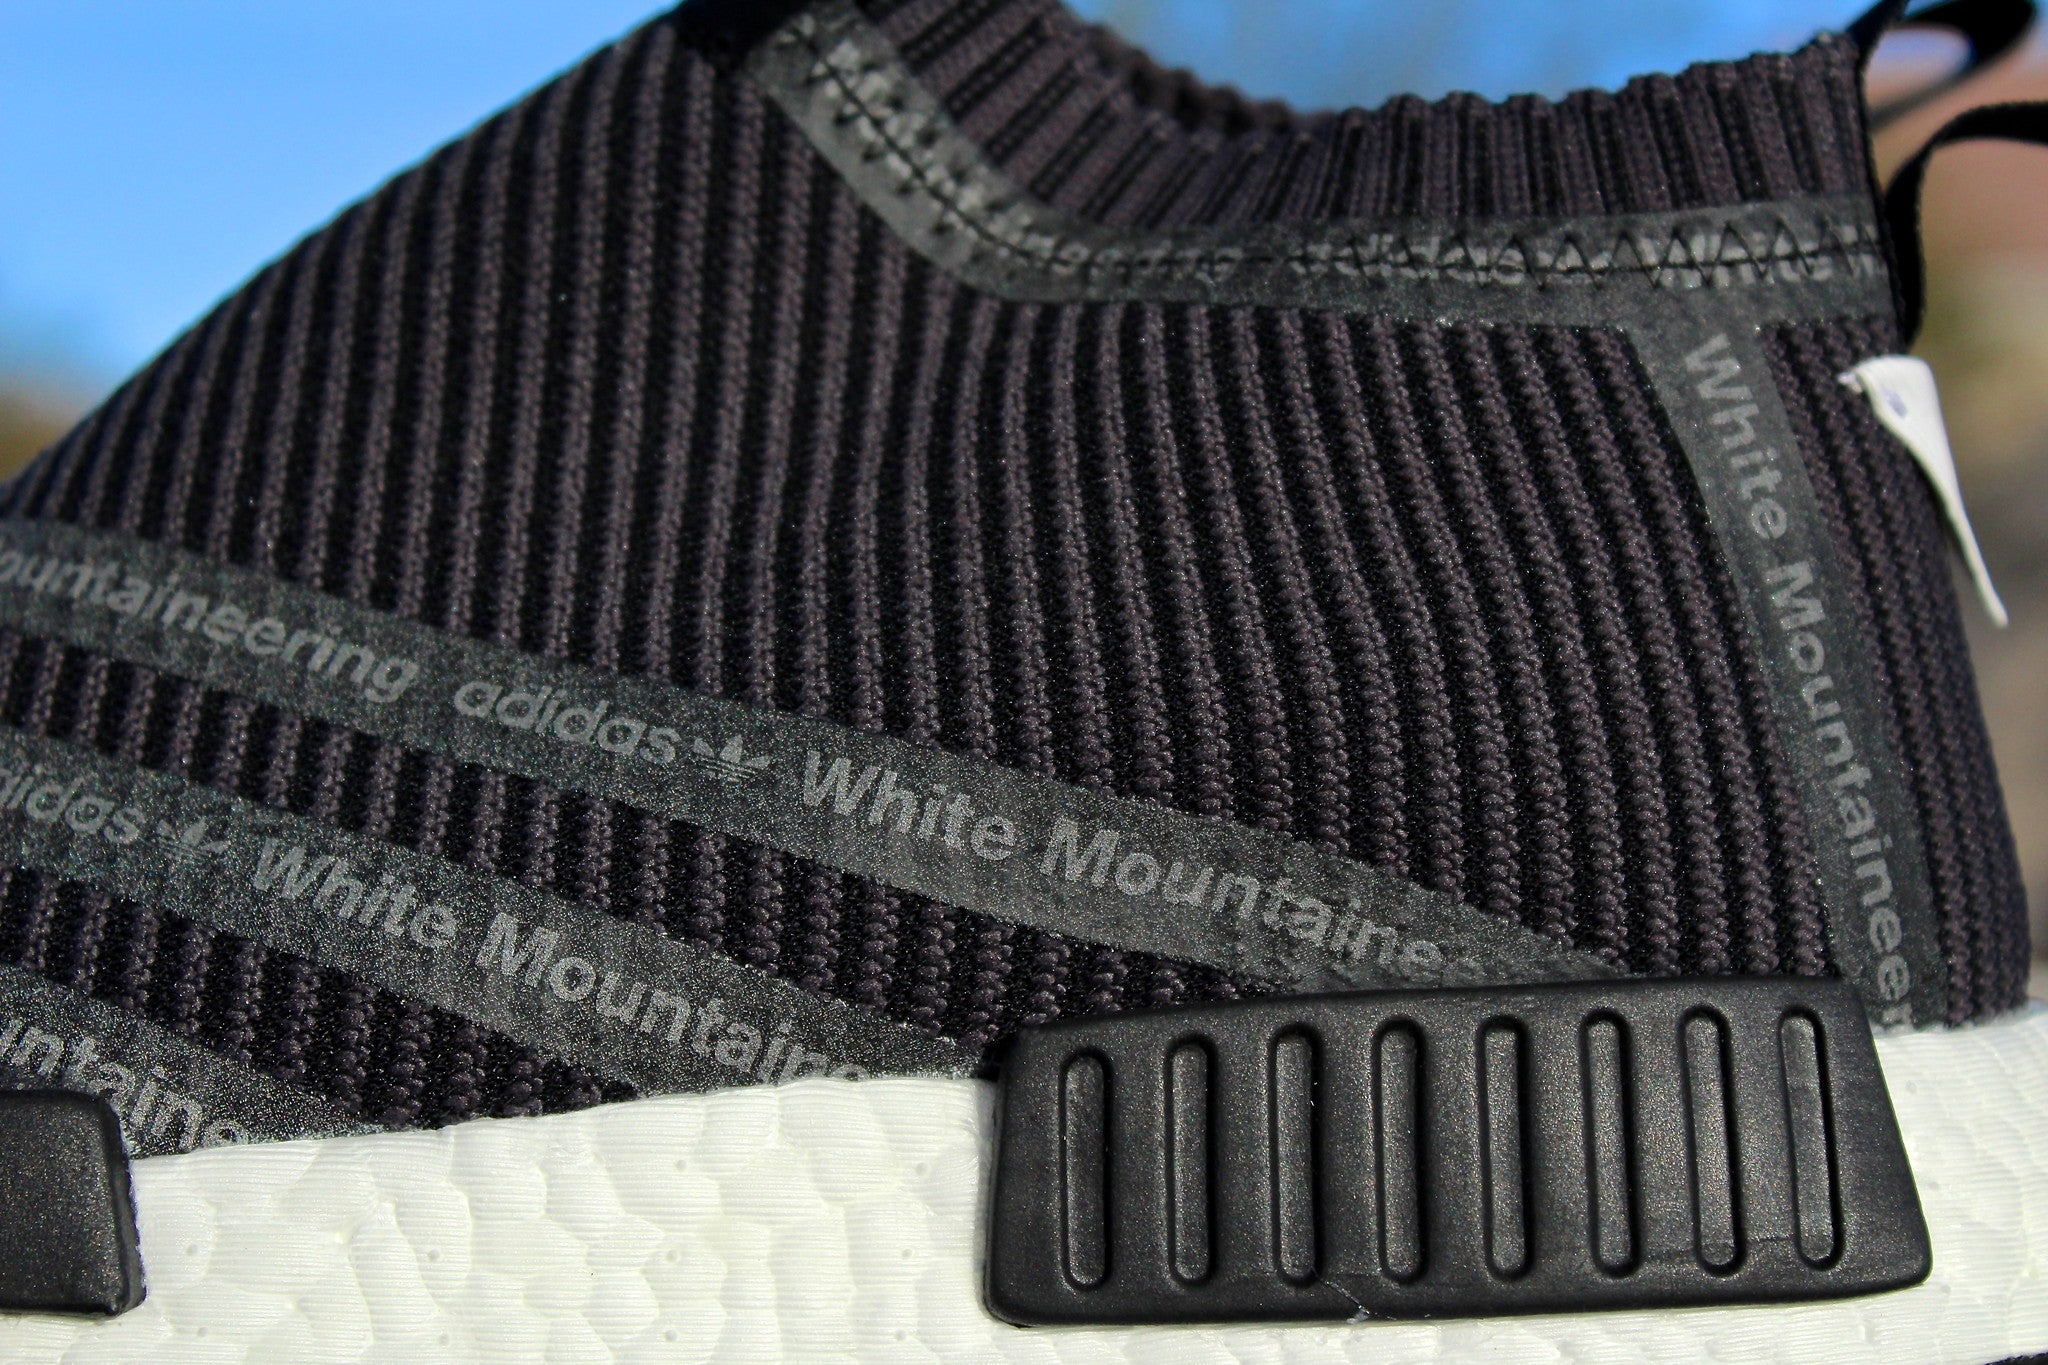 Adidas NMD (White Mountaineering)